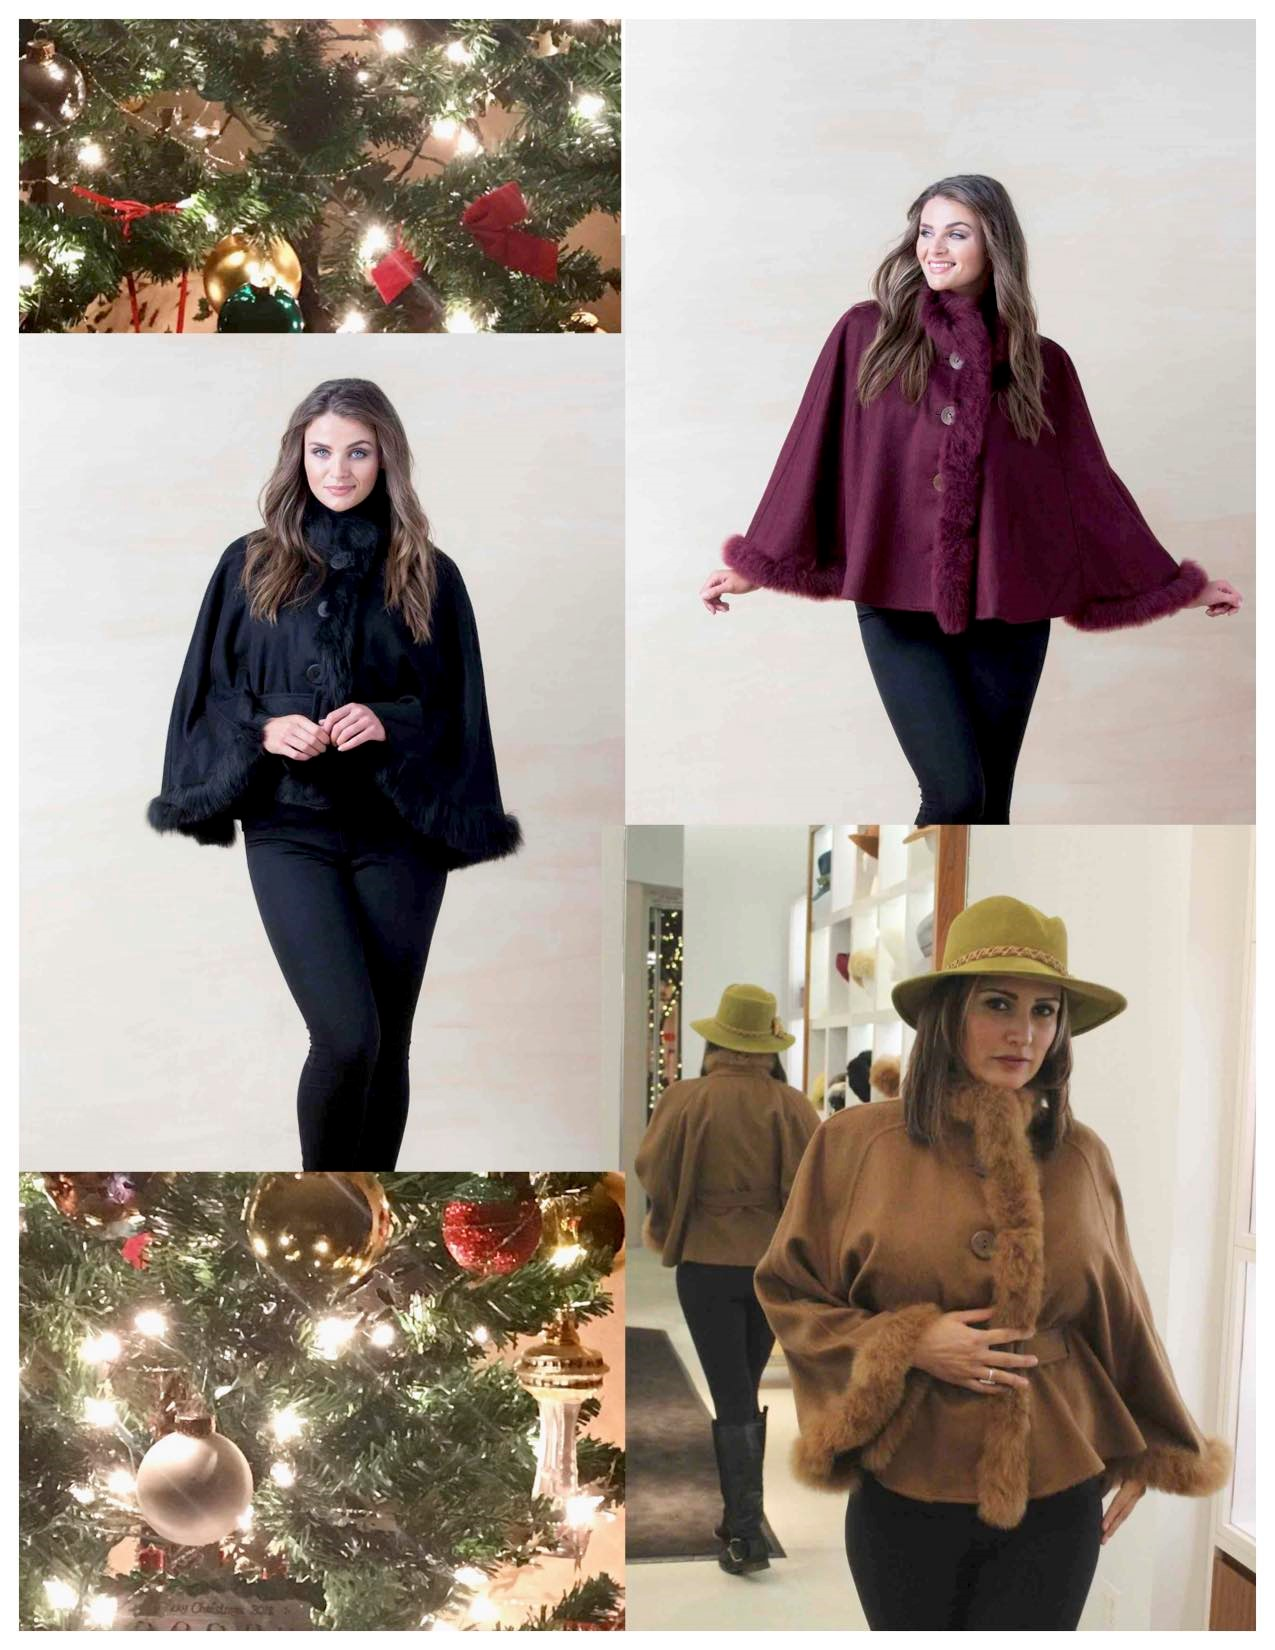 20% Off Capana Cape from Sheepskin & Alpaca Specialties